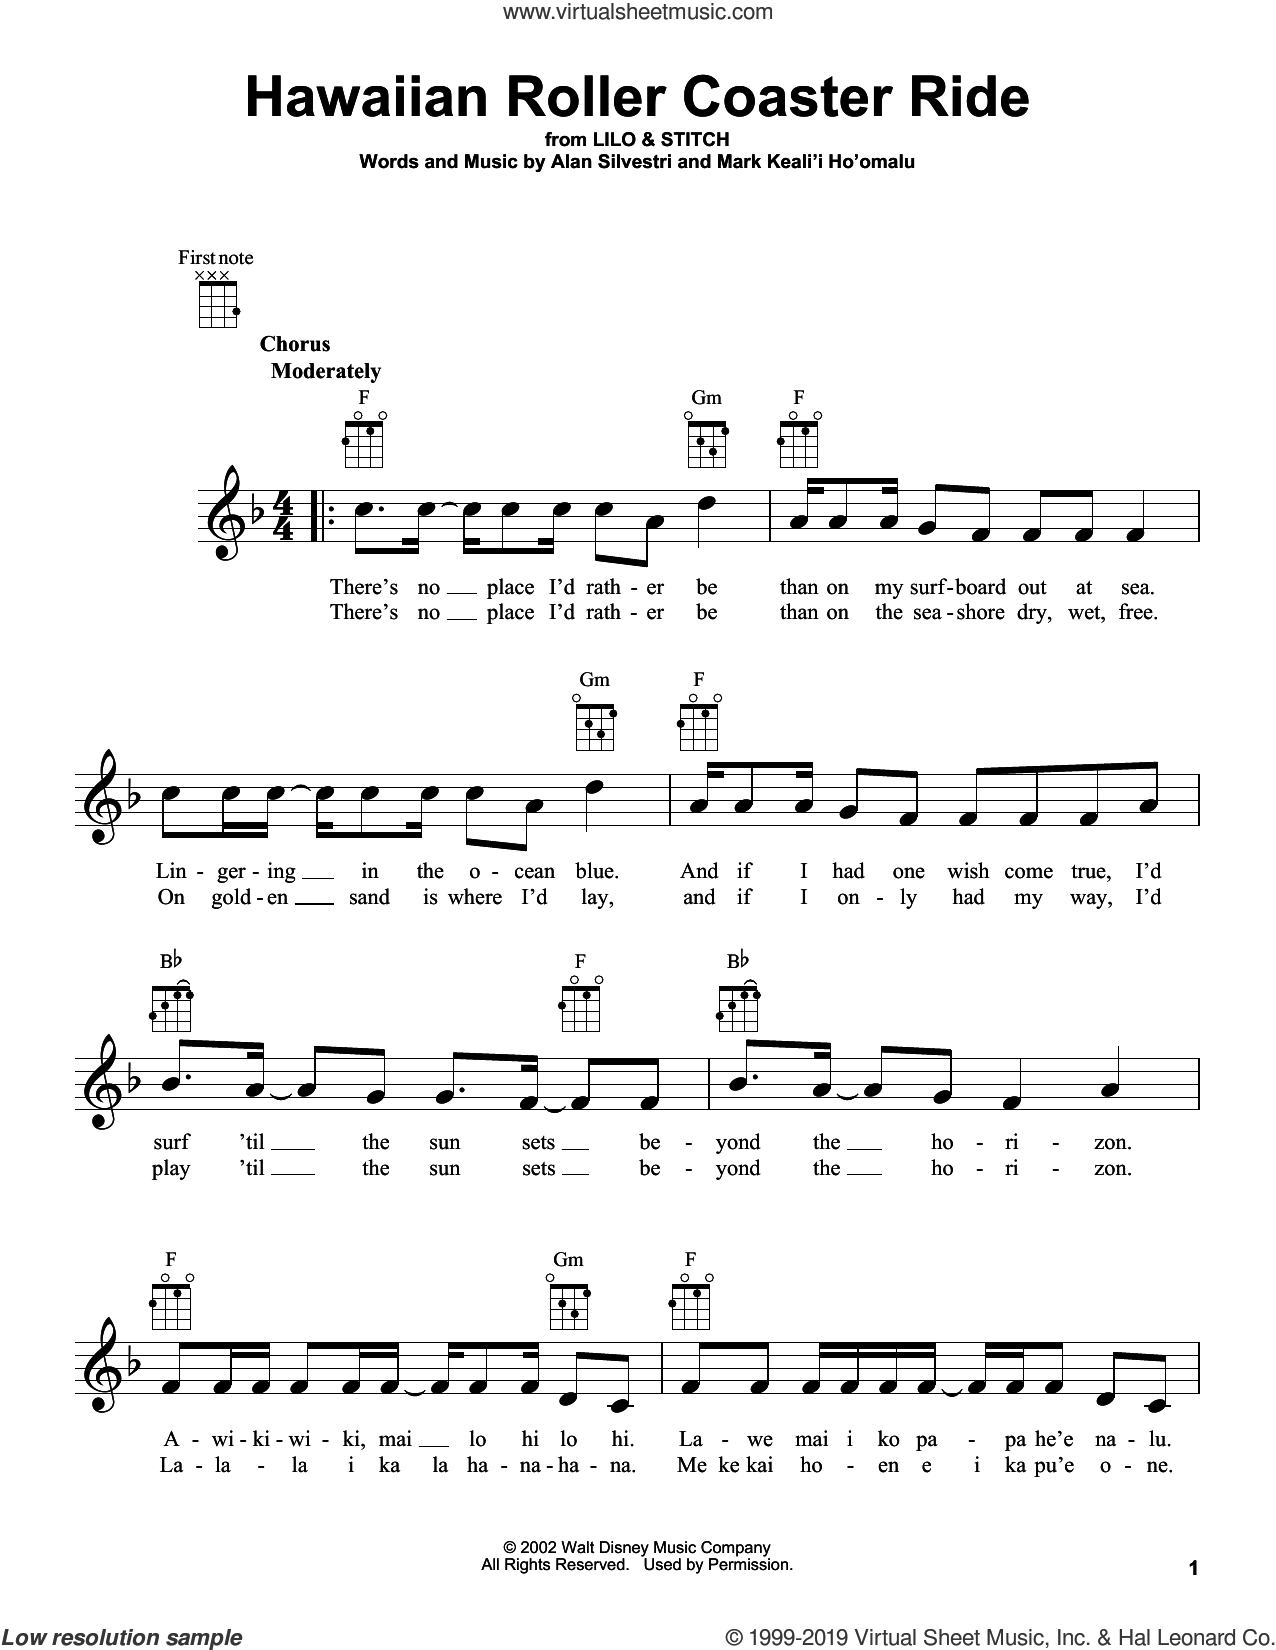 Hawaiian Roller Coaster Ride (from Lilo and Stitch) sheet music for ukulele by Alan Silvestri, intermediate skill level